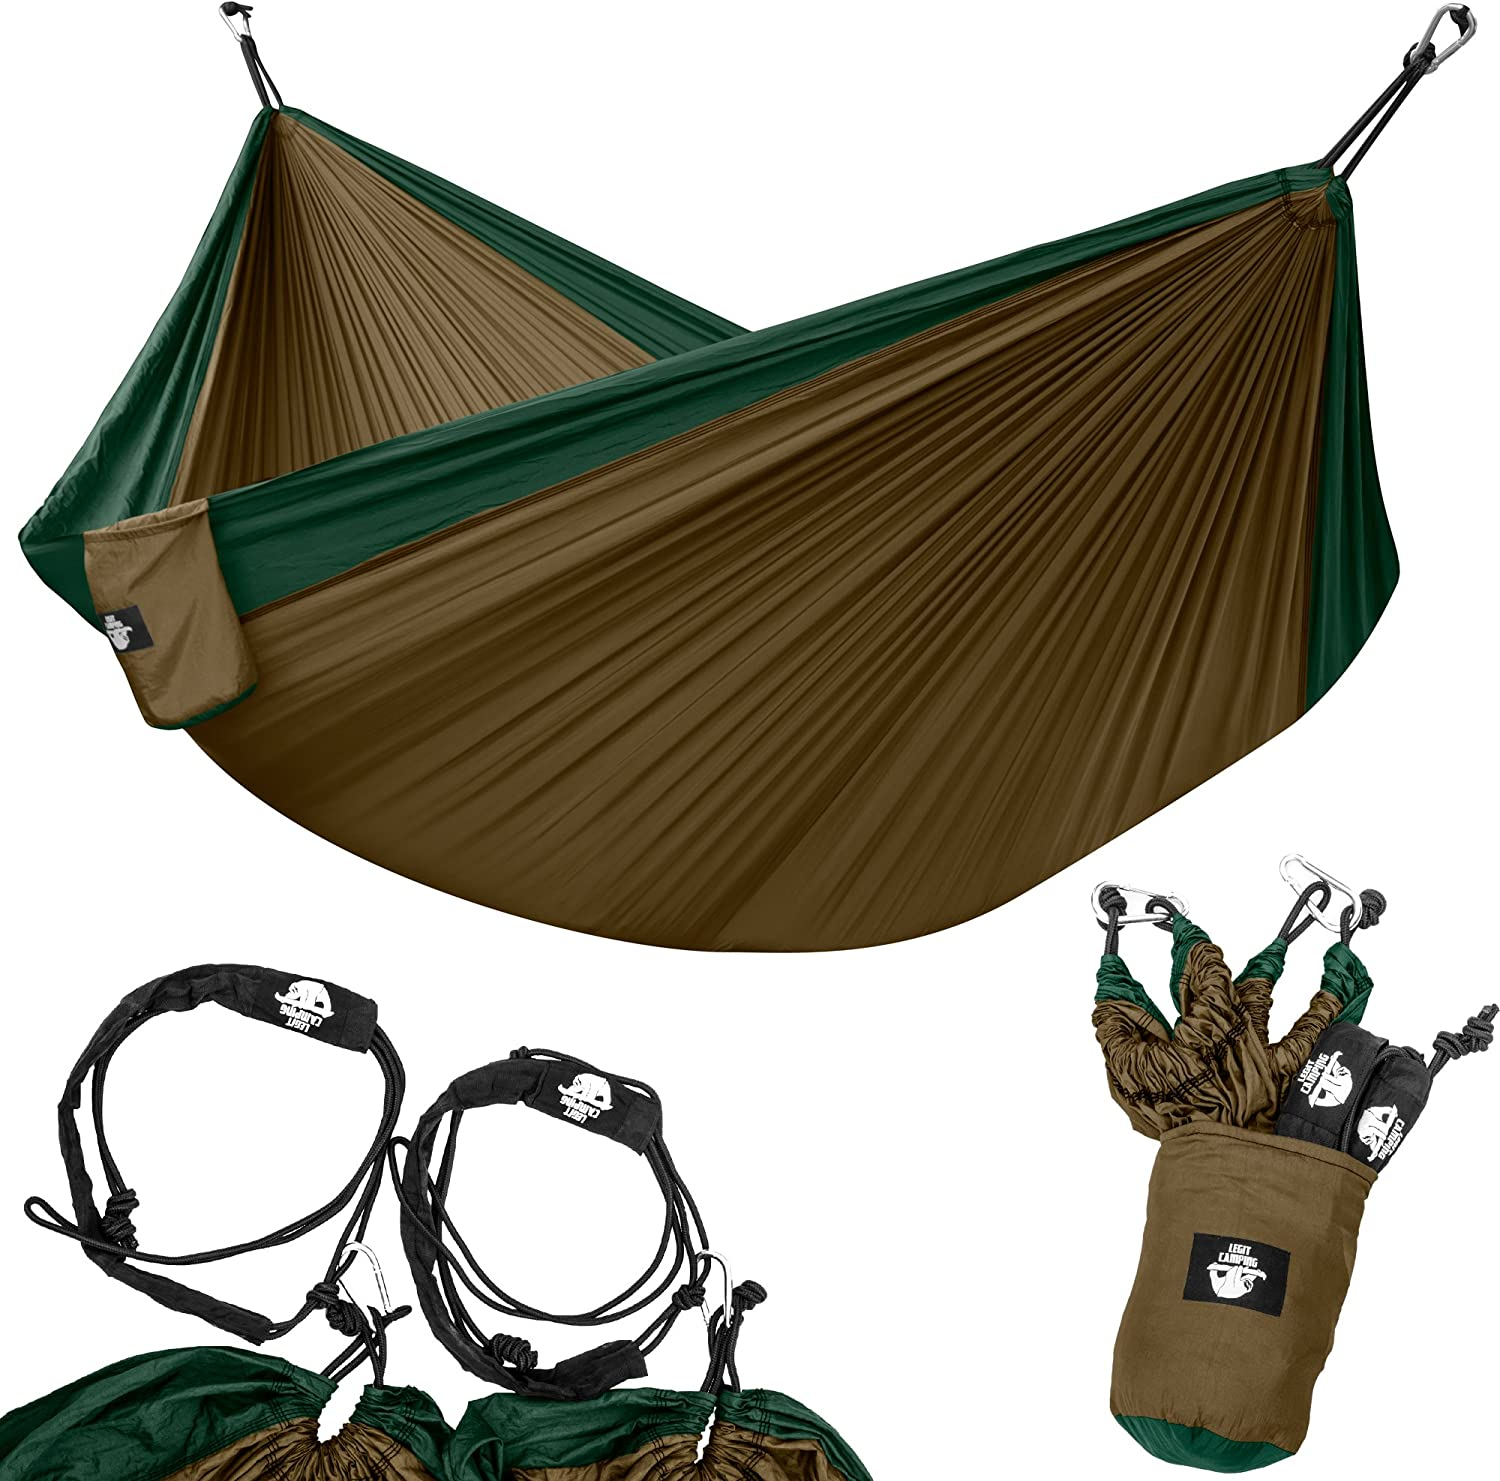 Legit Camping Portable Double Hammock - Dark Green/Brown - 400 lb Weight Capacity